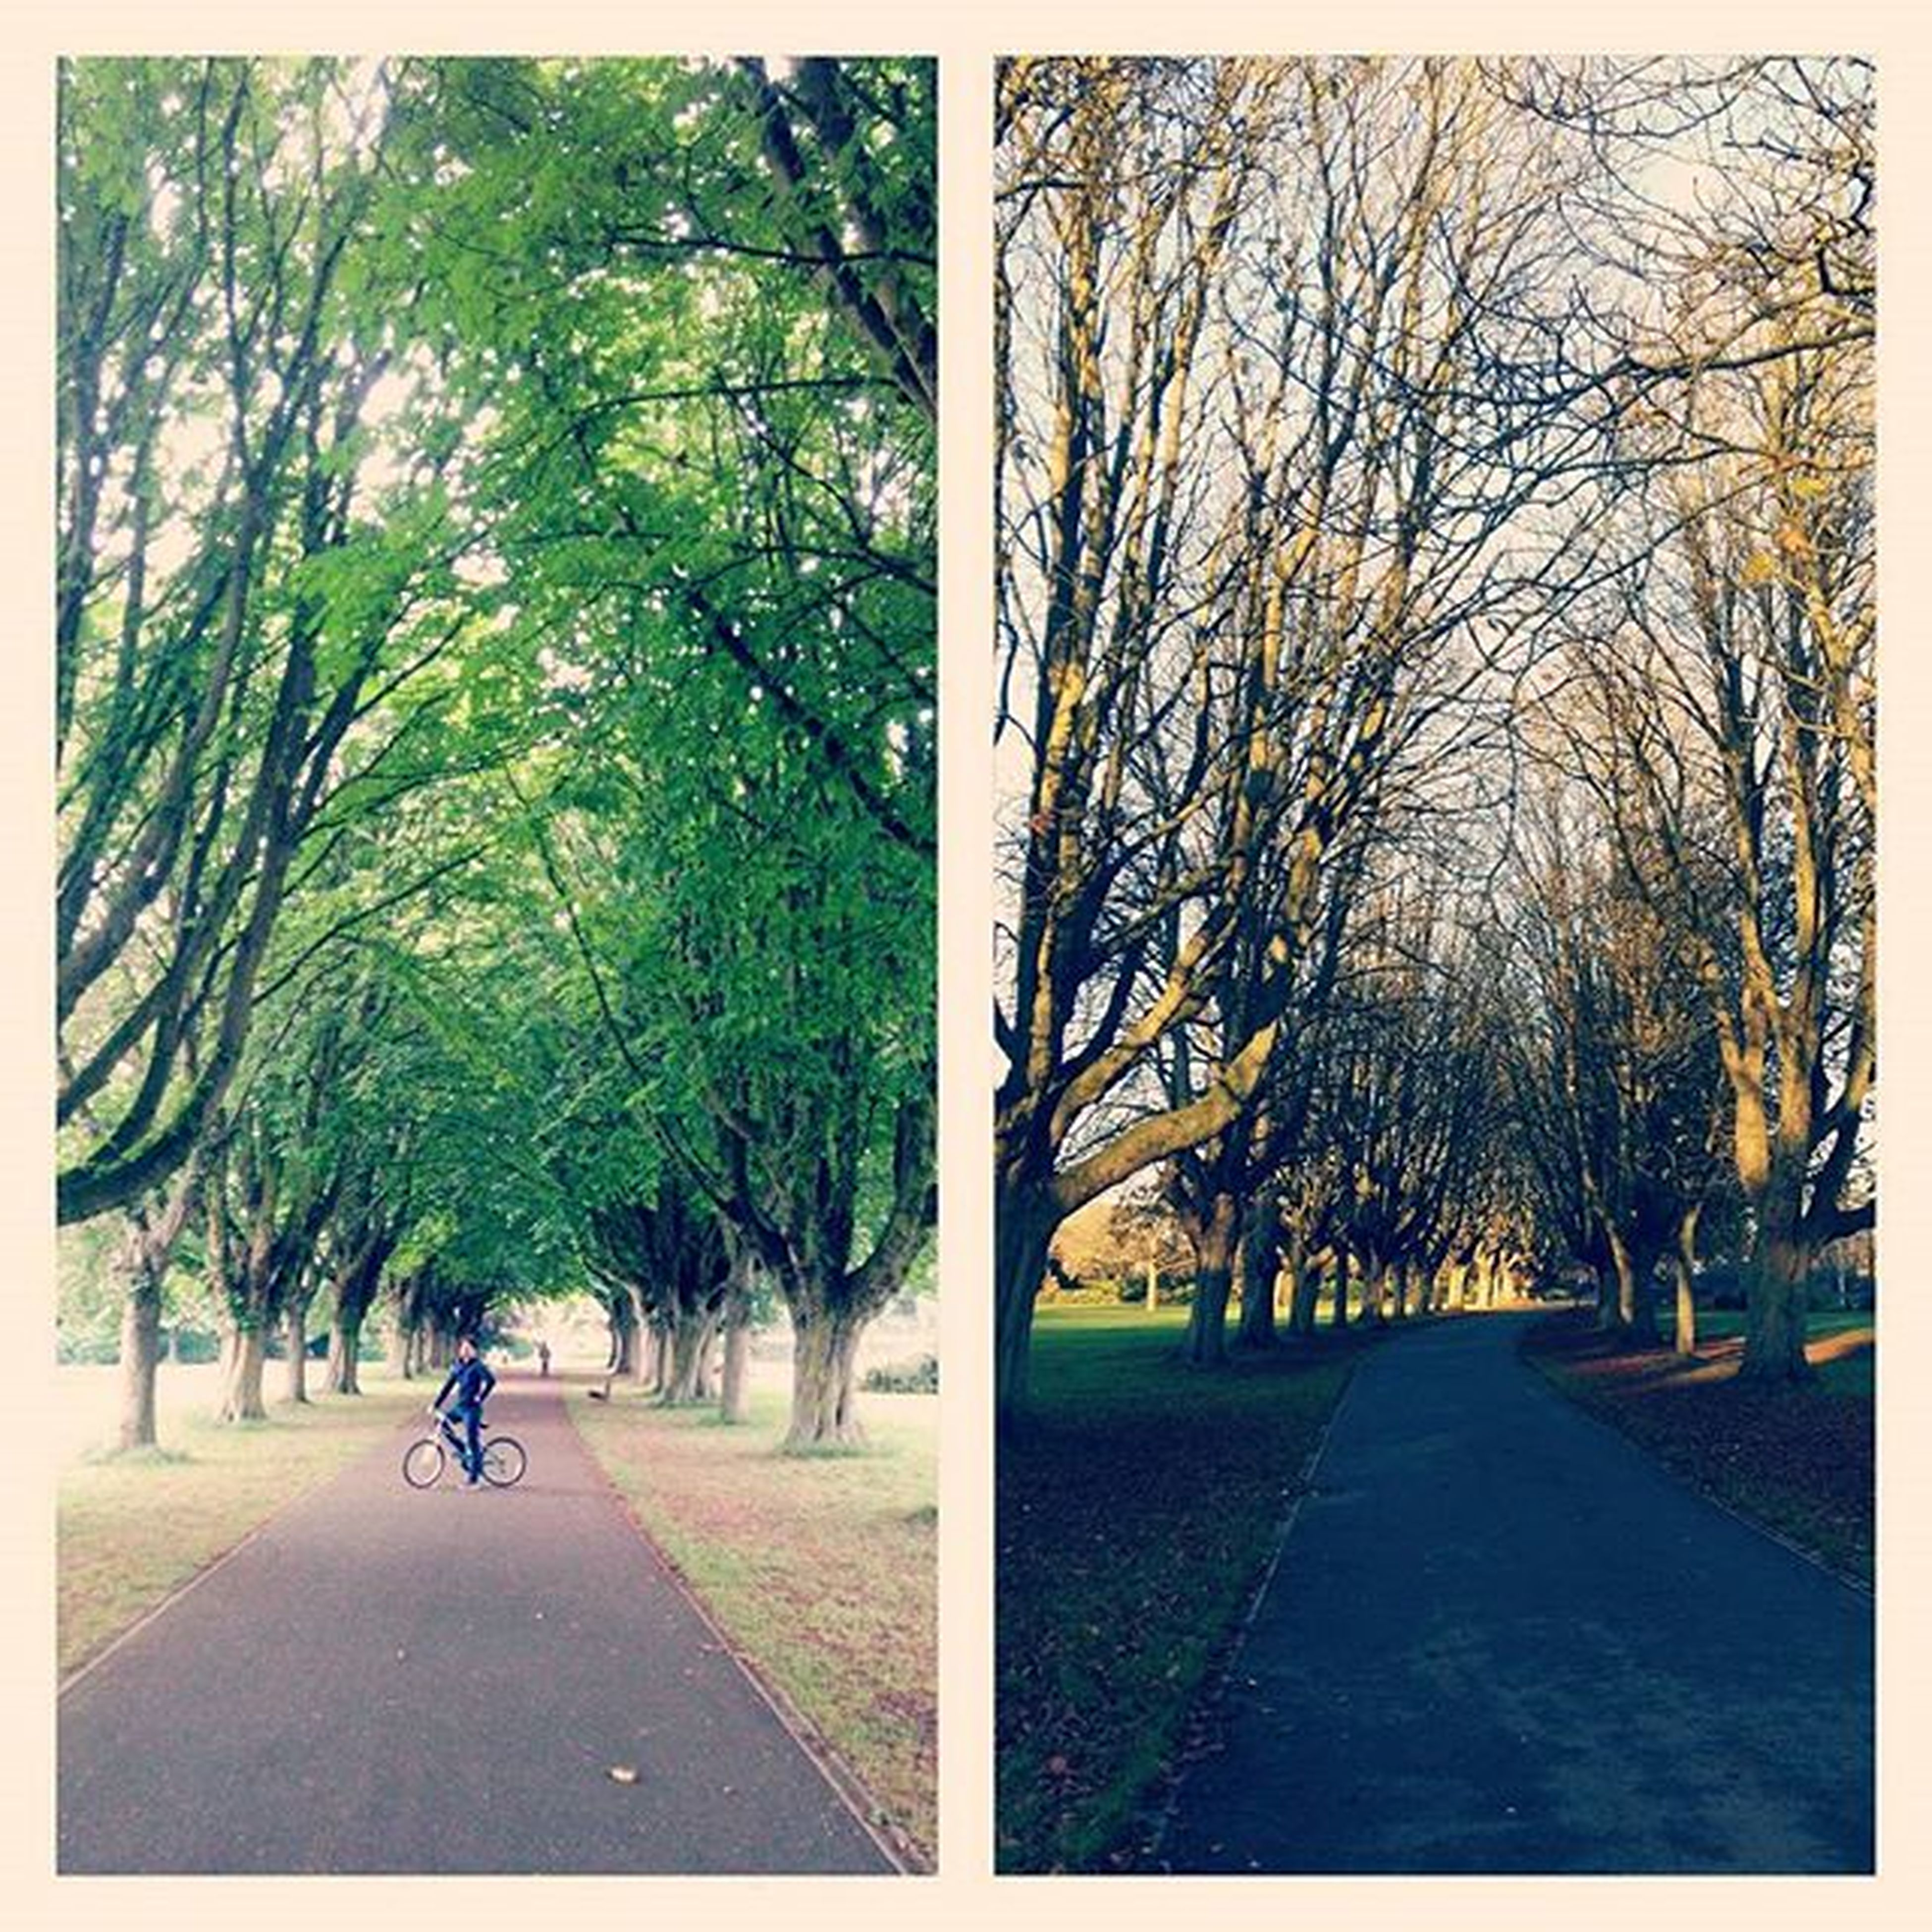 tree, transfer print, the way forward, auto post production filter, footpath, road, treelined, diminishing perspective, tree trunk, park - man made space, growth, street, branch, day, walkway, park, shadow, sunlight, outdoors, transportation